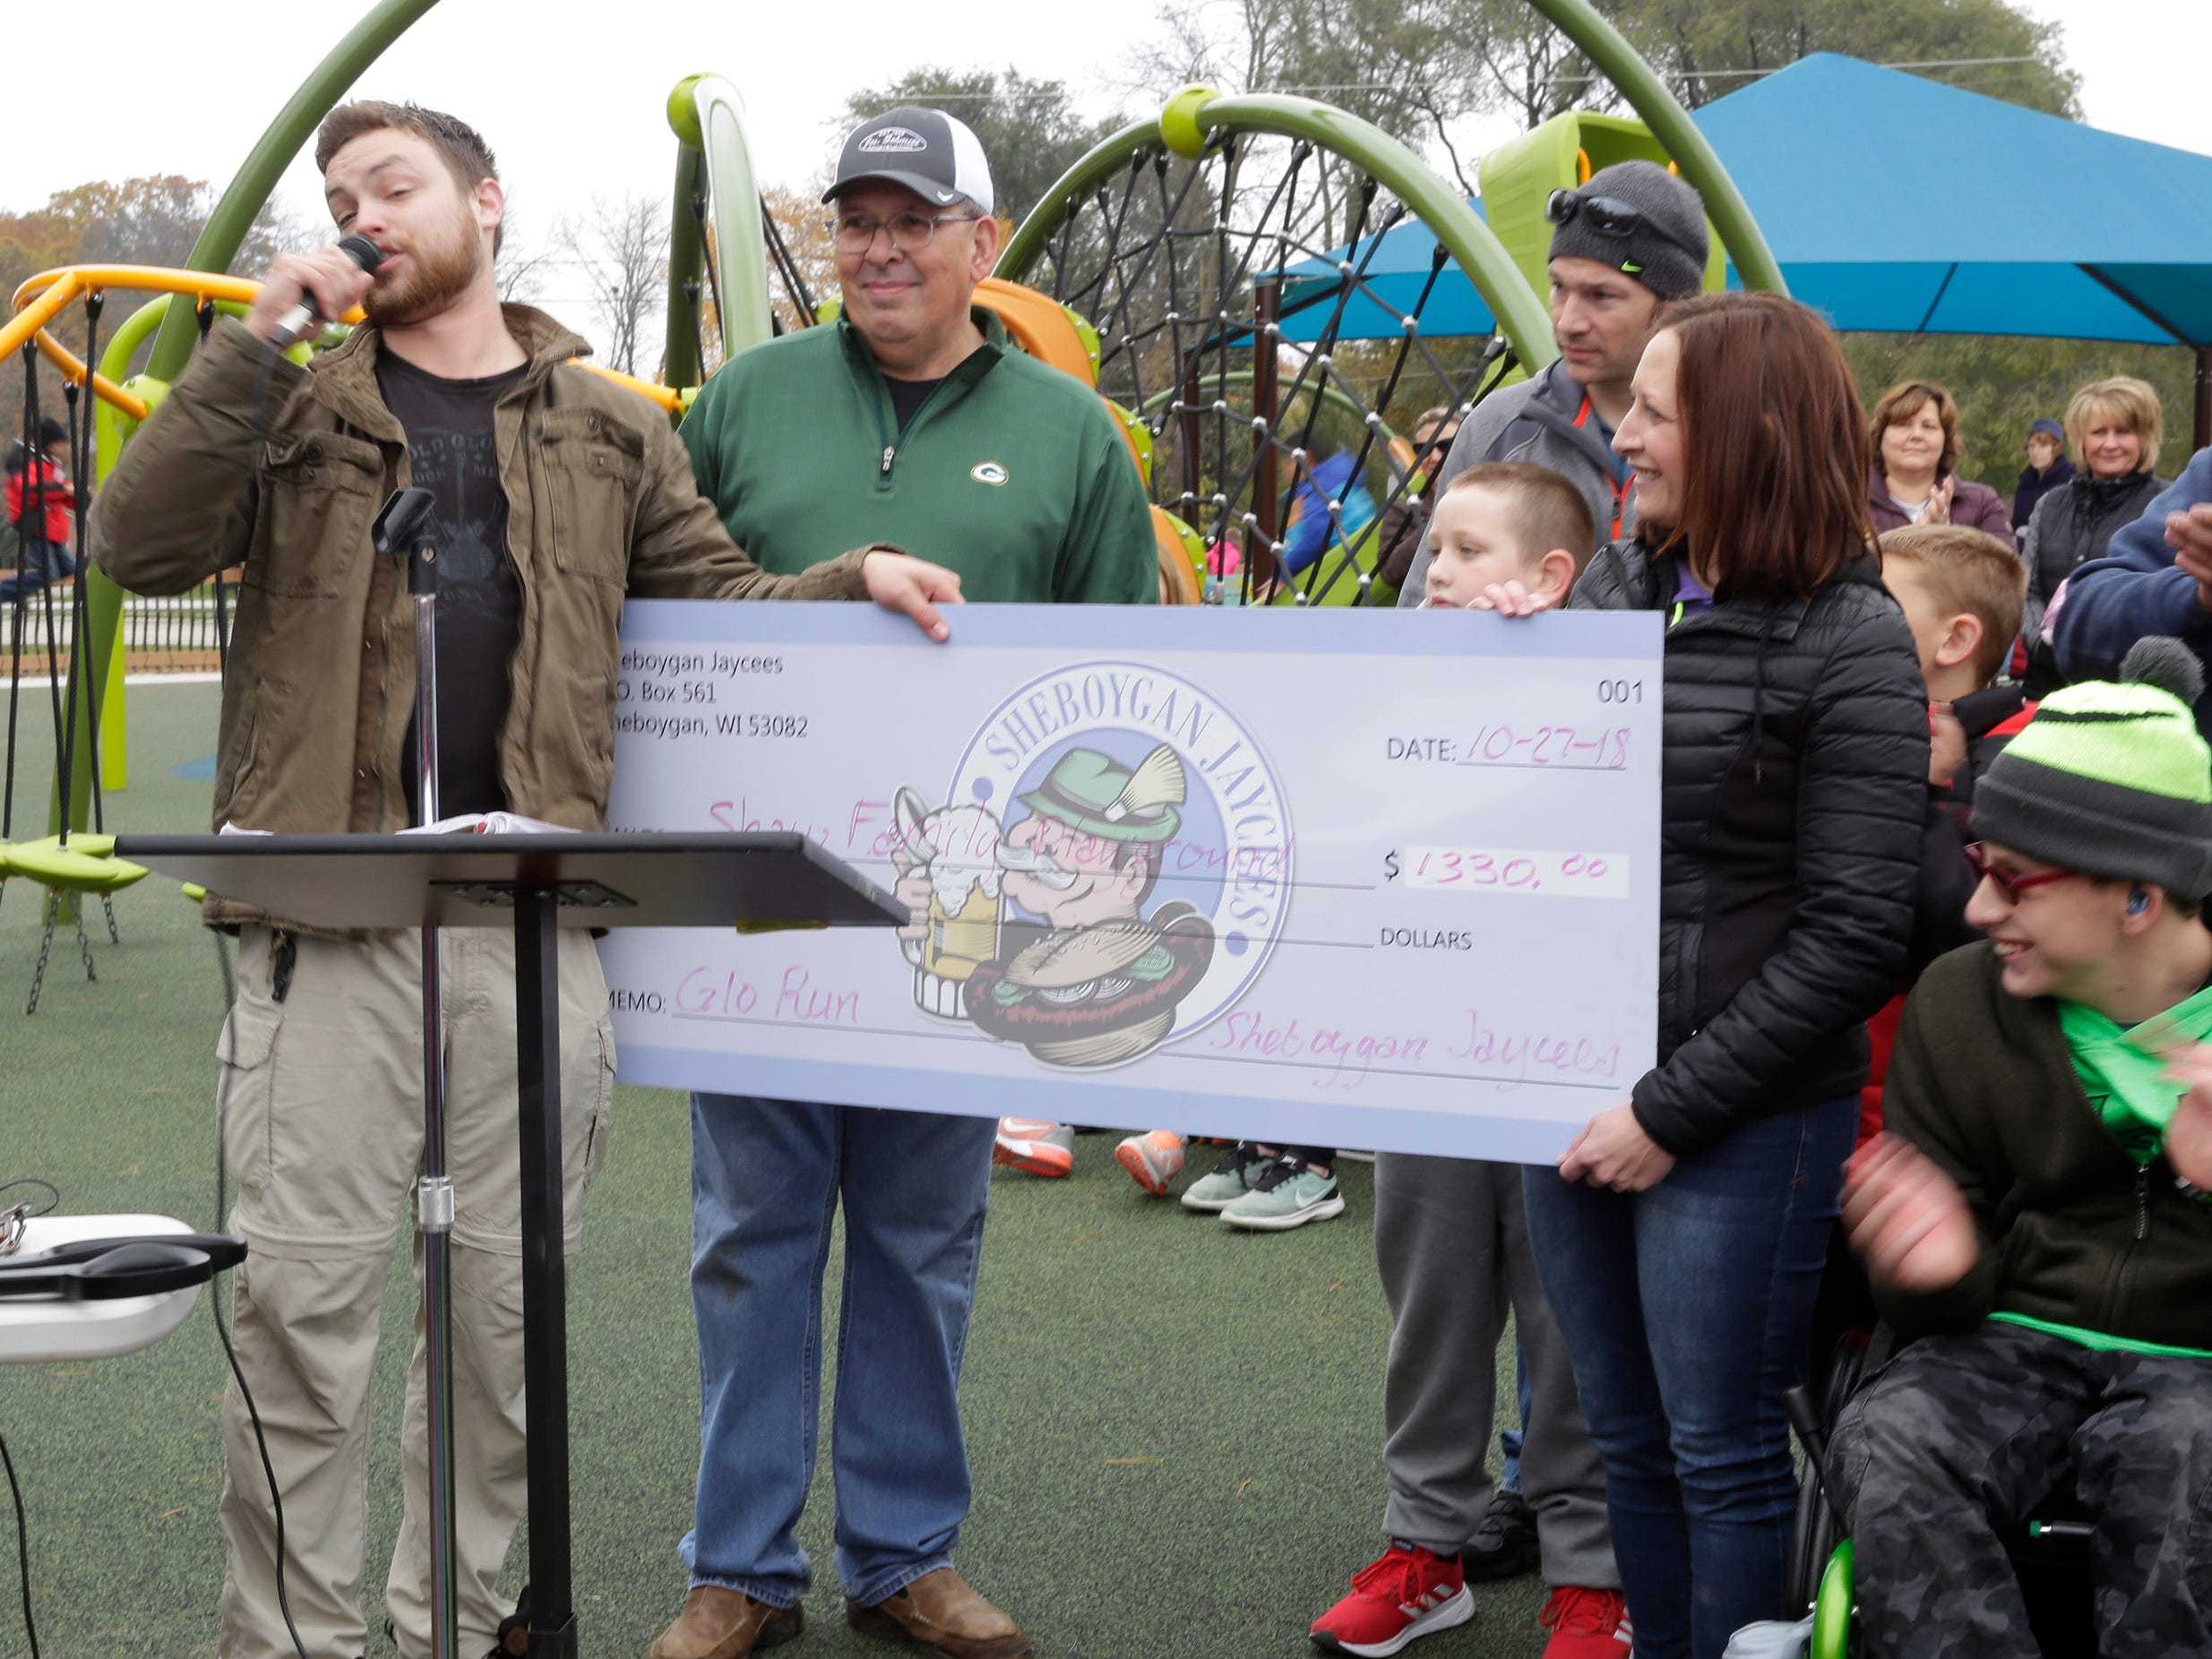 The Sheboygan Jaycees presented the last portion of the money they raised for the Shaw Family Playground, Saturday, September 27, 2018, in Sheboygan, Wis. The playground held a ribbon cutting event to showcase the adaptive playground that is accessible for children of all physical abilities.